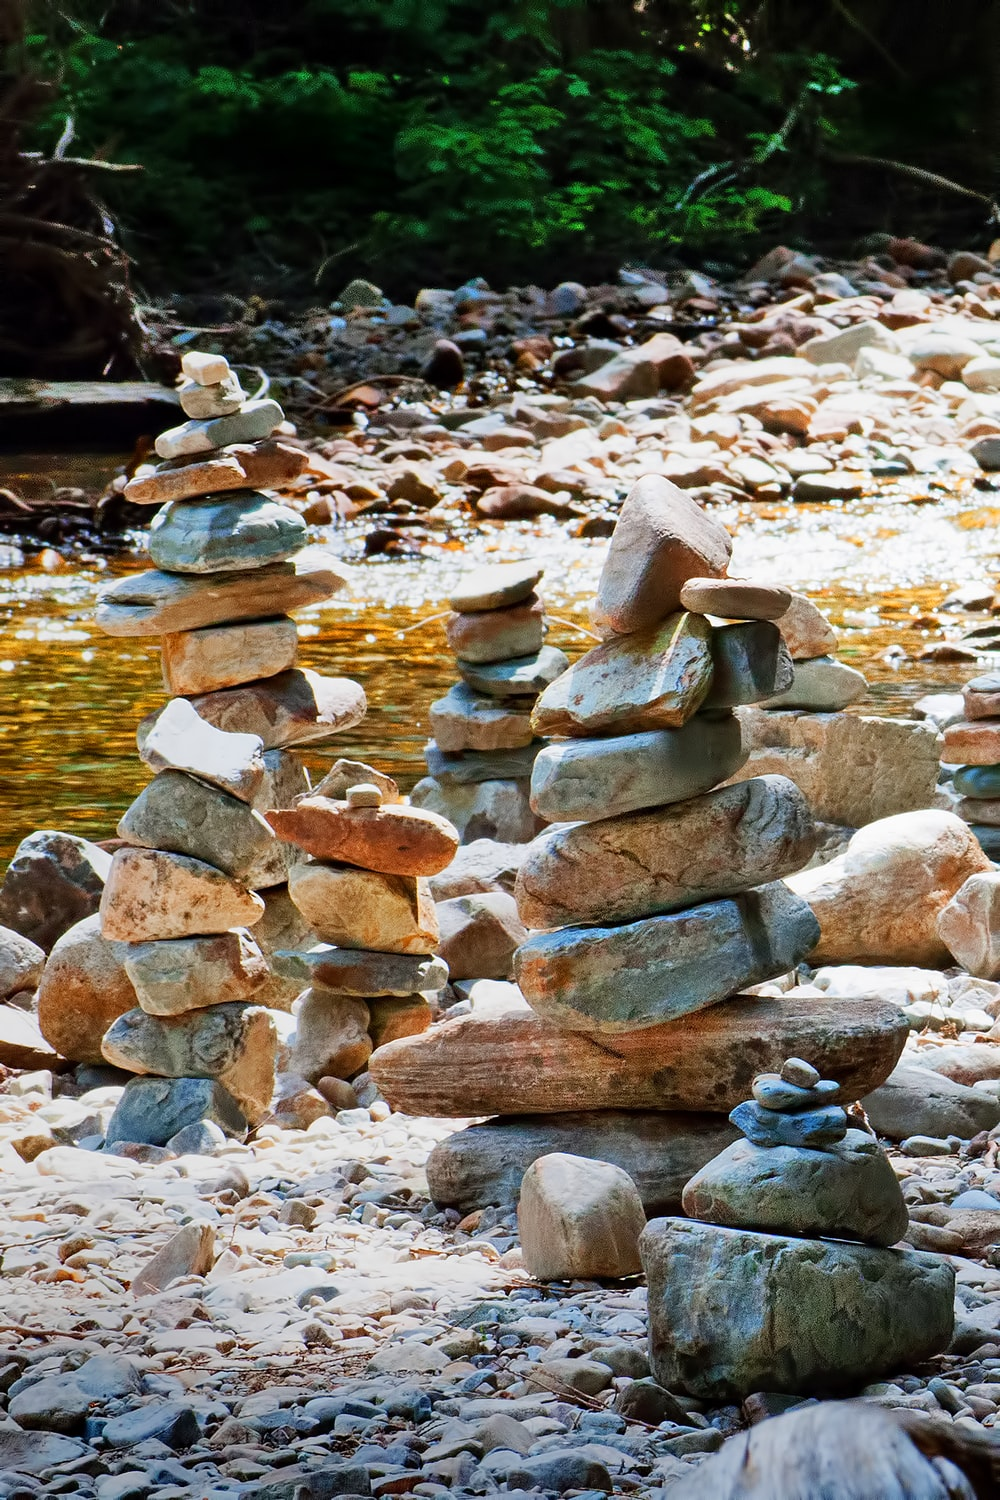 stack of stones near body of water during daytime